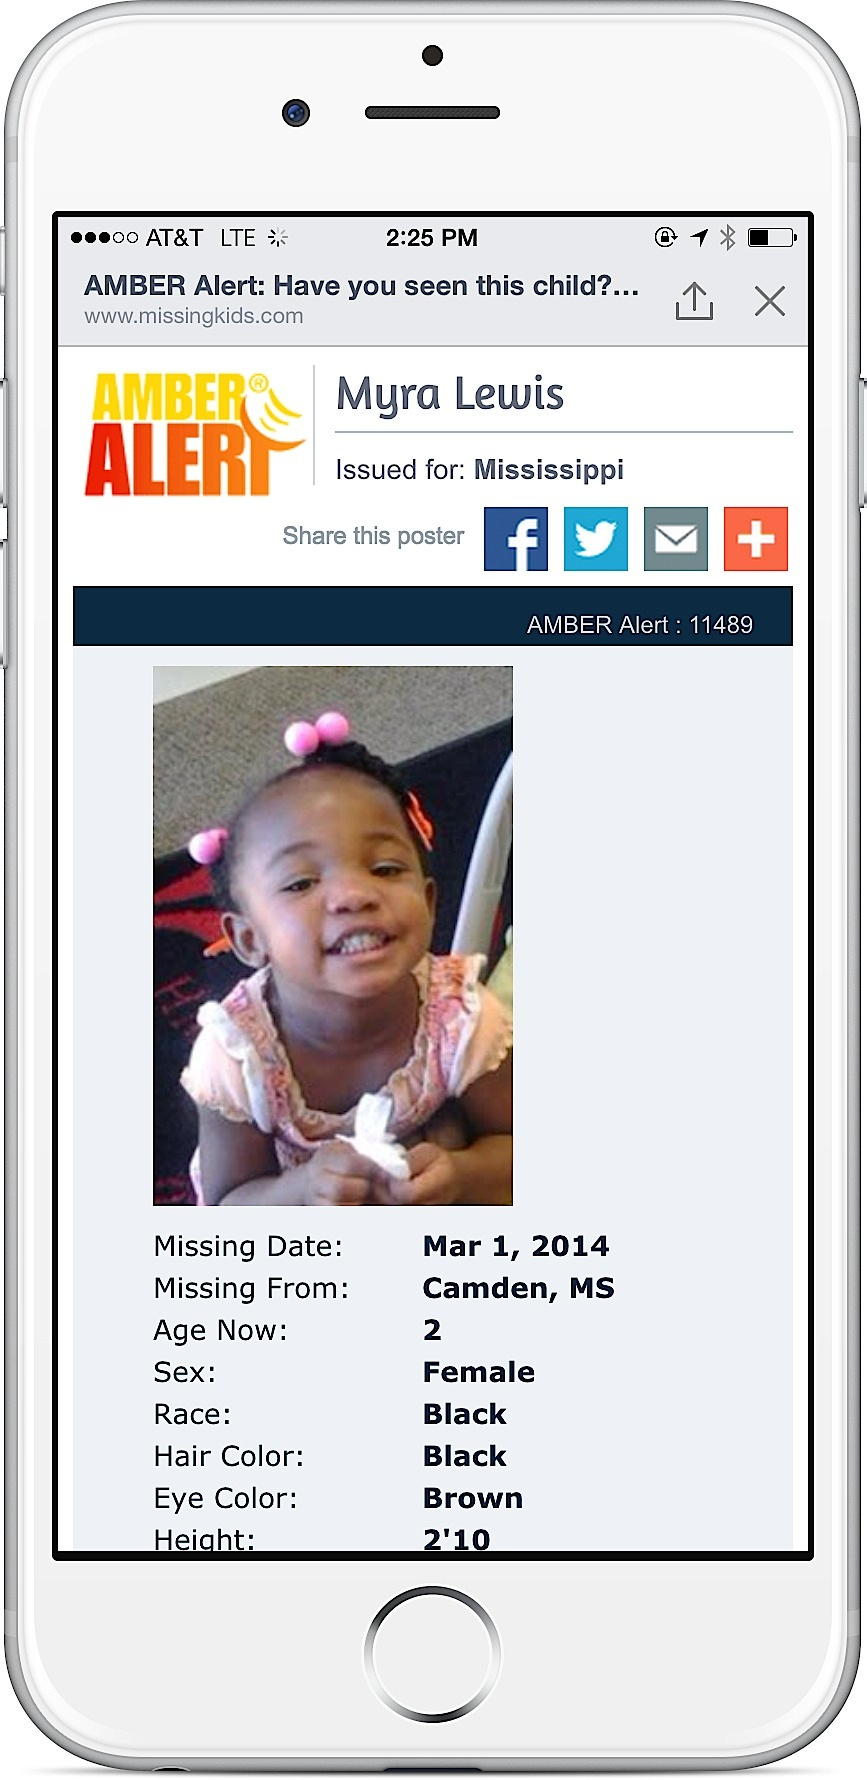 Details of the missing child will be shown in a poster that can be shared.